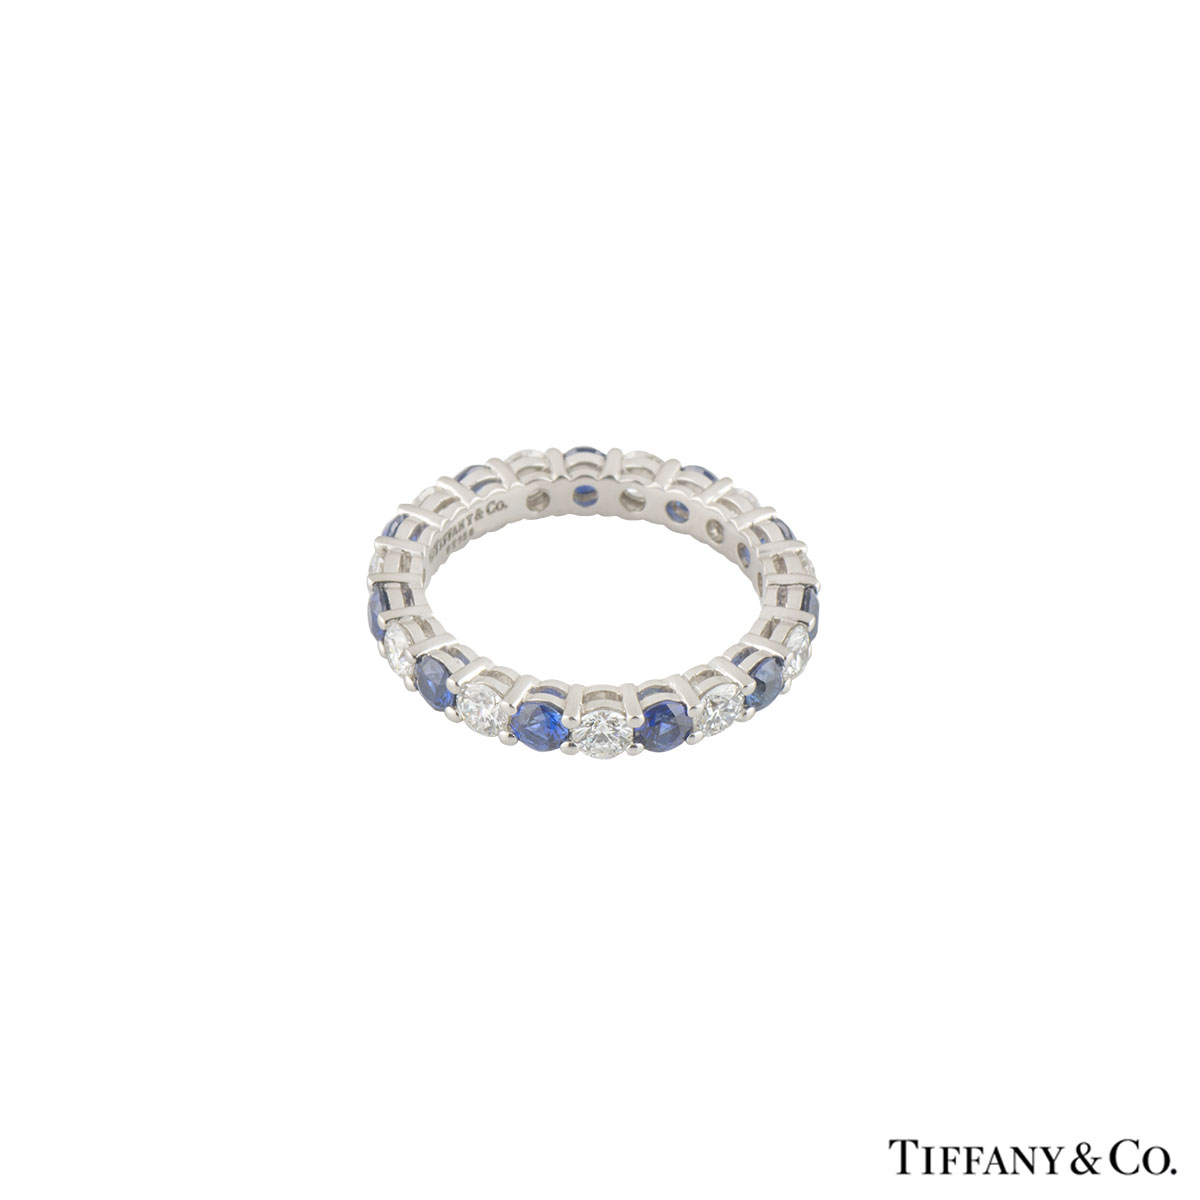 Tiffany & Co. Diamond and Sapphire Embrace Eternity Band Ring